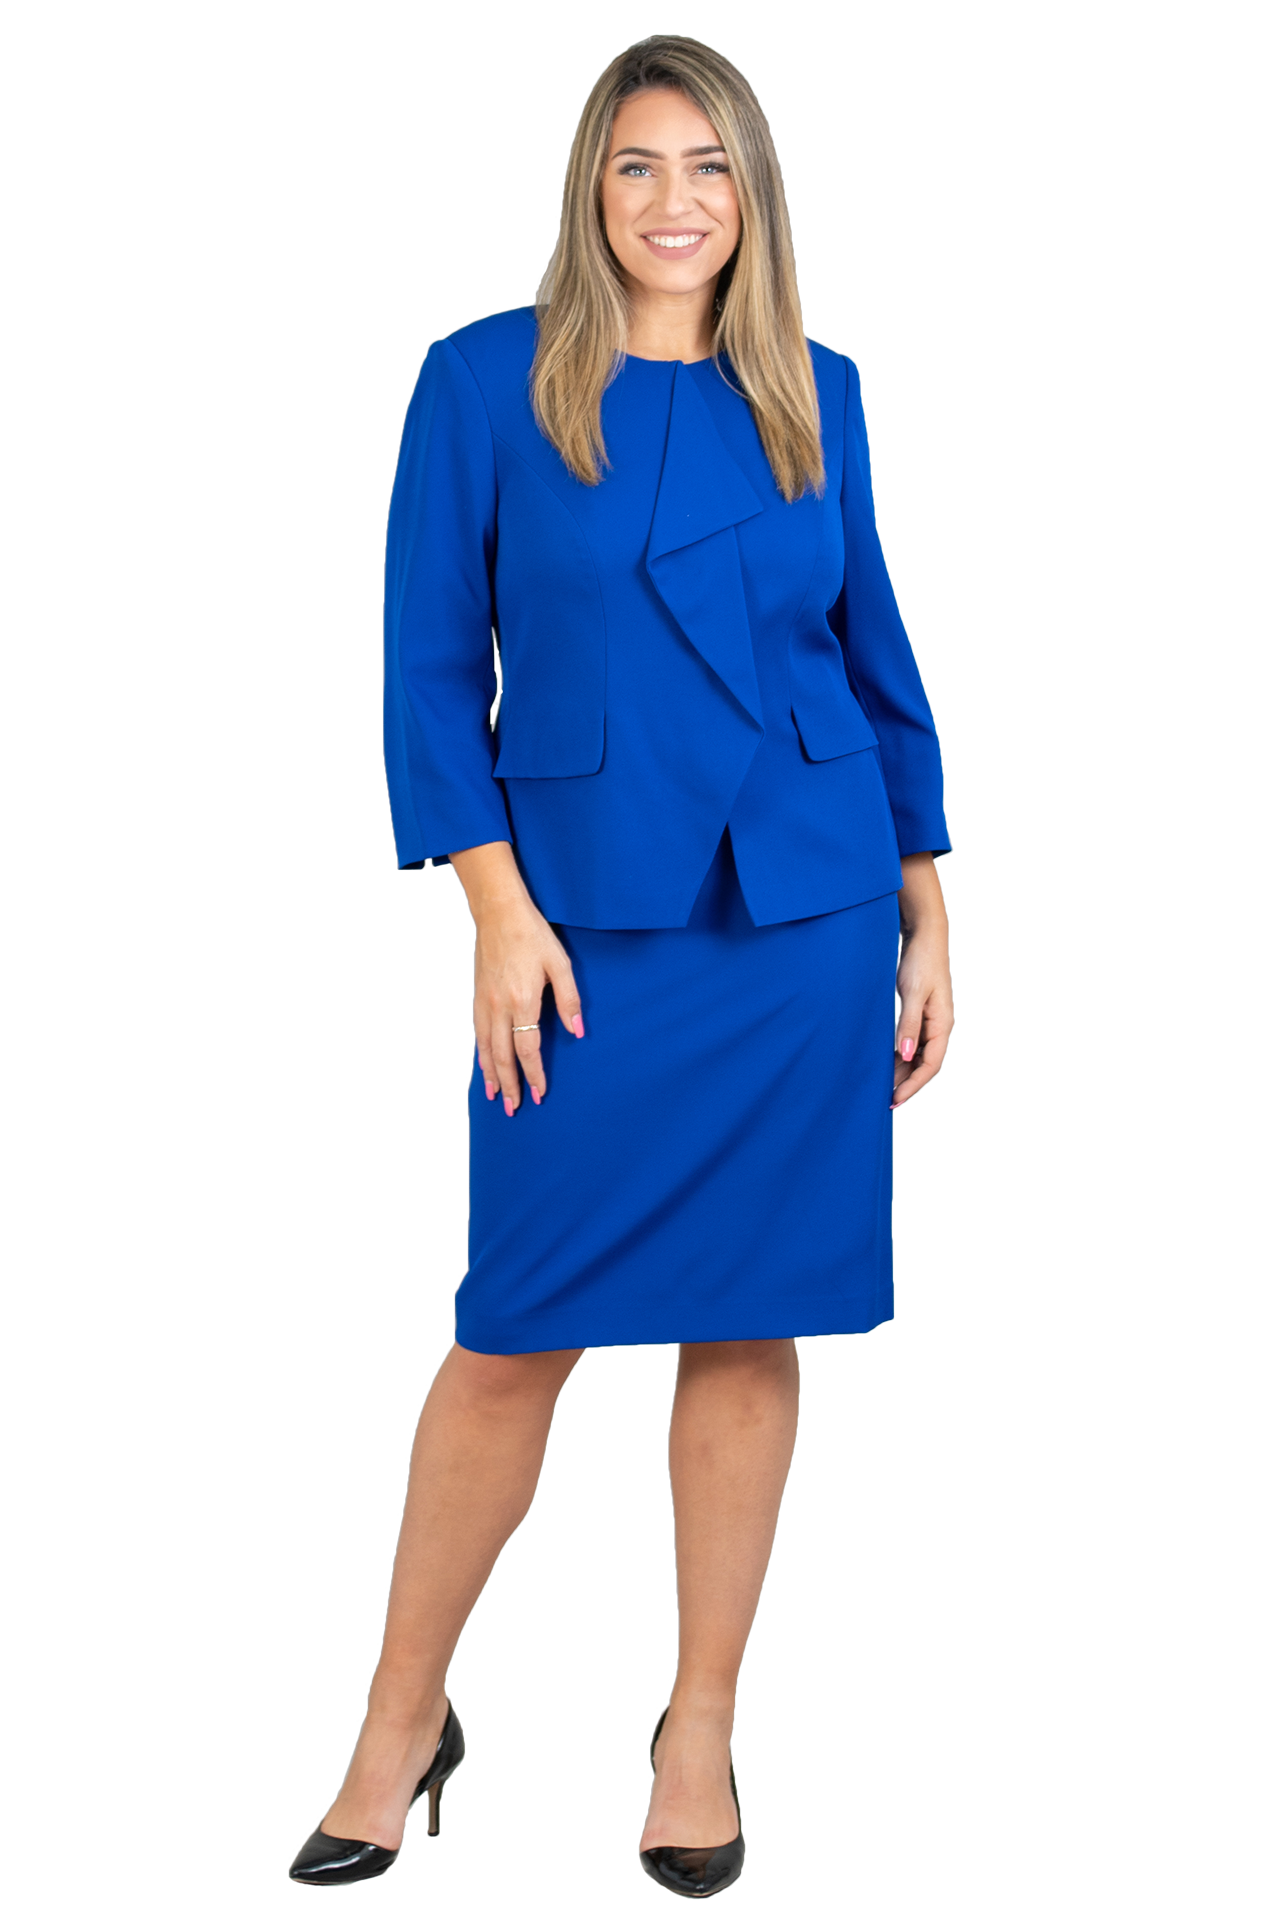 John Meyer Skirt Suit 875C125 - Church Suits For Less